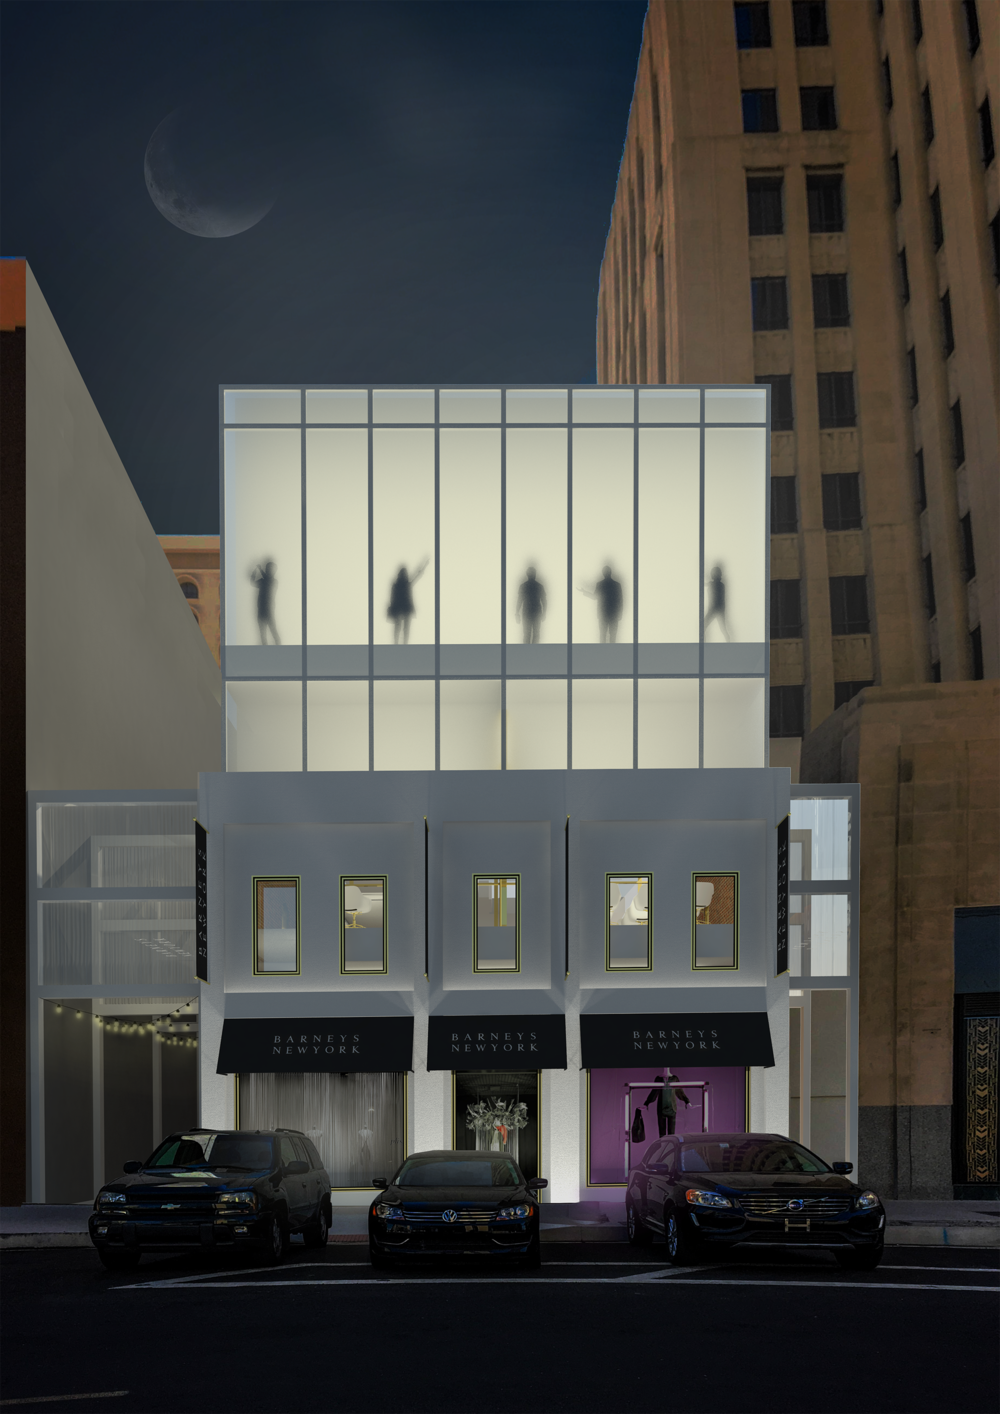 New Facade; fitting rooms are semi exposed to the street providing privacy with frosted glass, showcasing the many gender less silhouettes trying on gender free clothing.